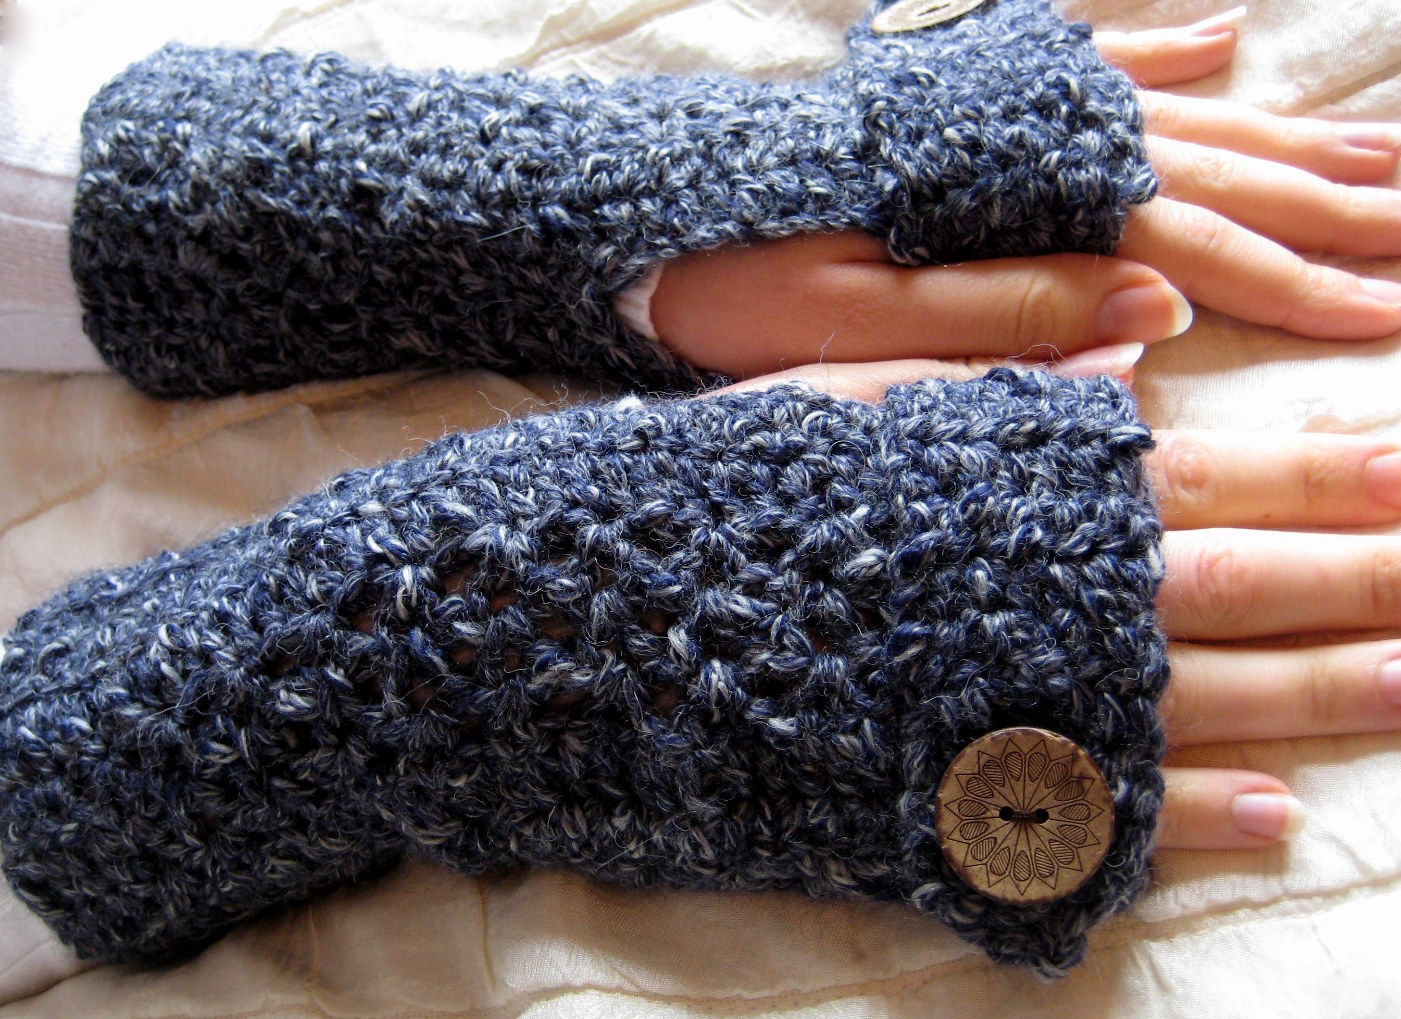 17 Fingerless Gloves Crochet Patterns | Guide Patterns